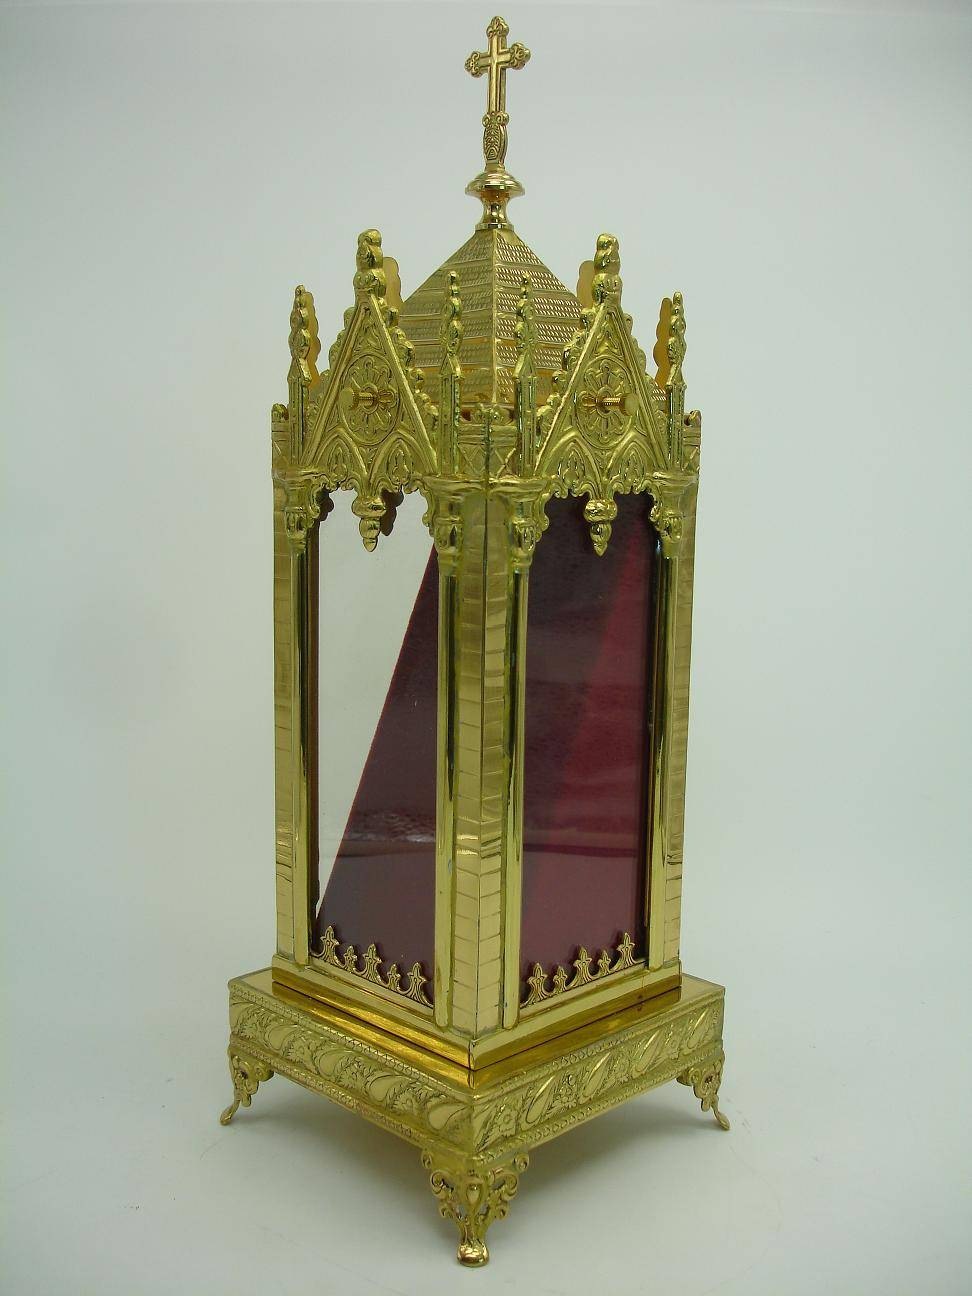 Good-looking Castle Style Bottom with Lacy Pattern in this Brass Reliquary X26